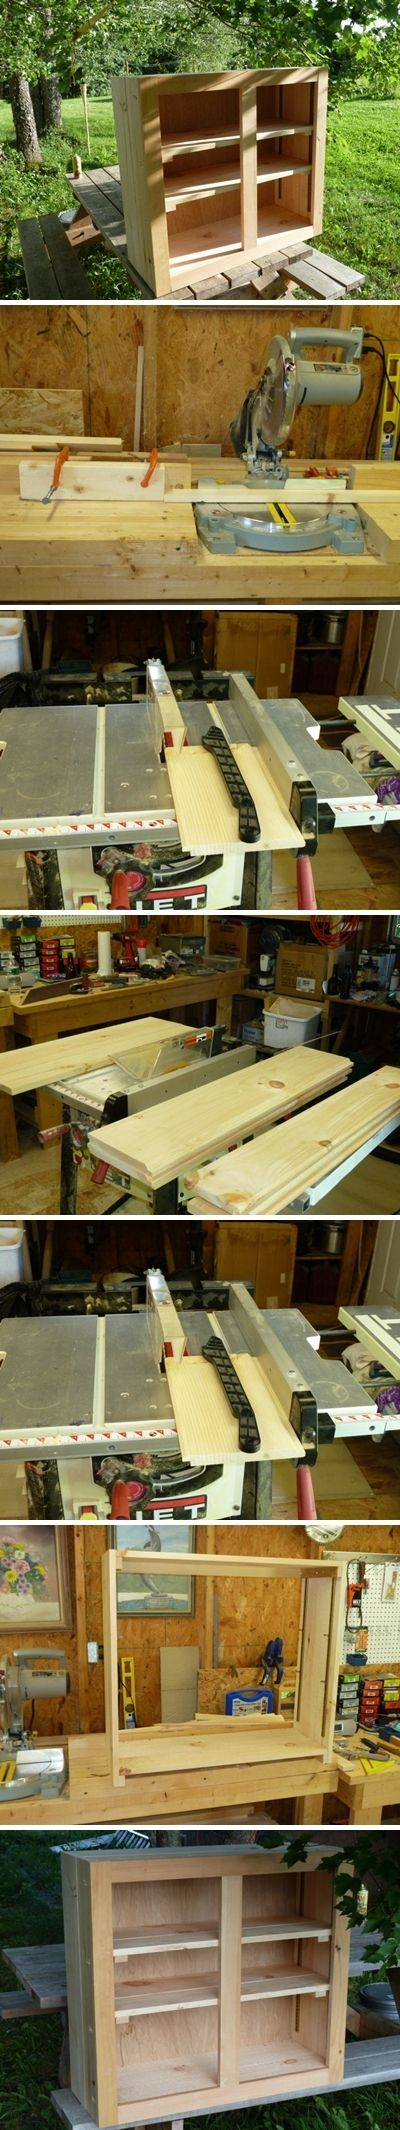 Diy Kitchen Cabinets Hgtv Pictures Do It Yourself Ideas: DIY Kitchen Cabinets Diy Crafts Home Made Easy Crafts